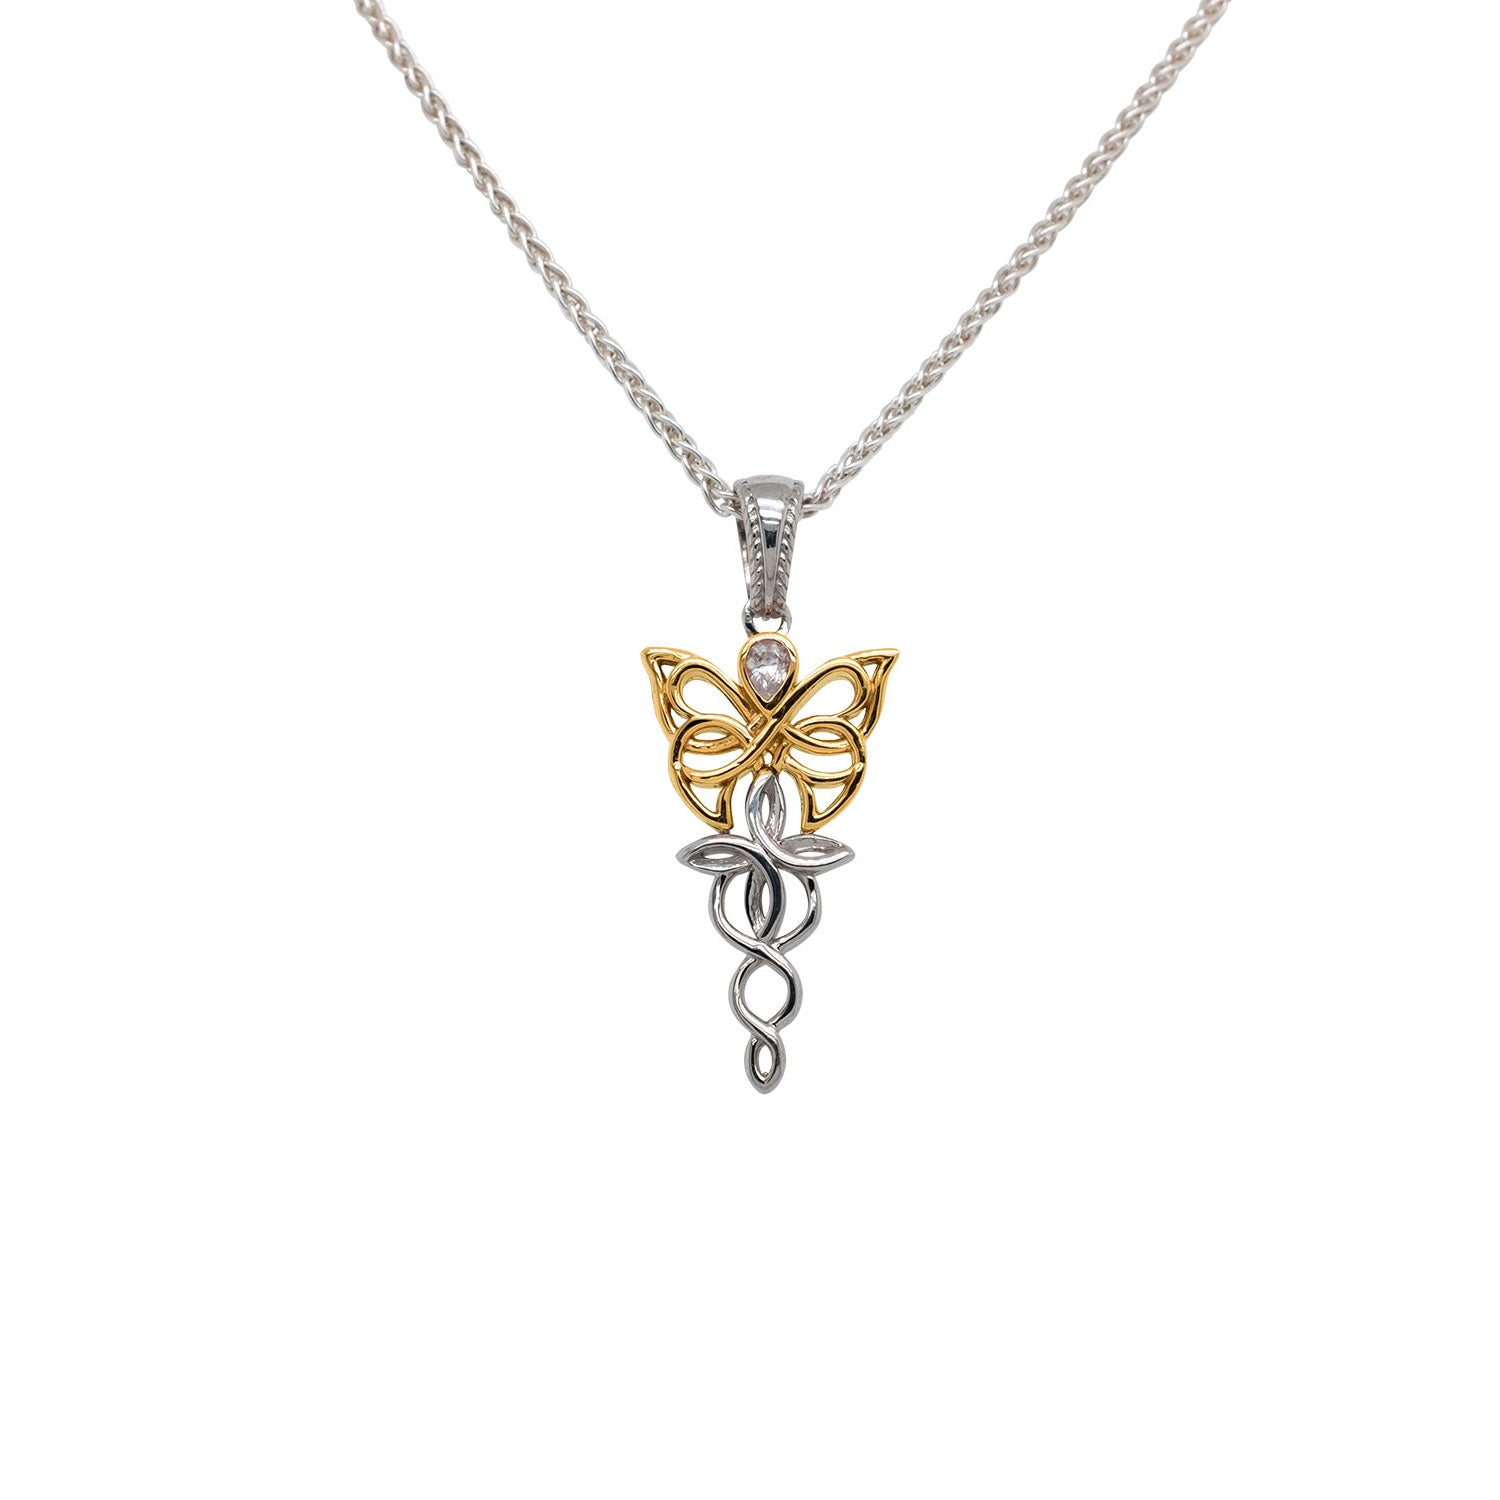 Pendant Rhodium 10k Yellow CZ Petite Butterfly Pendant from welch and company jewelers near syracuse ny